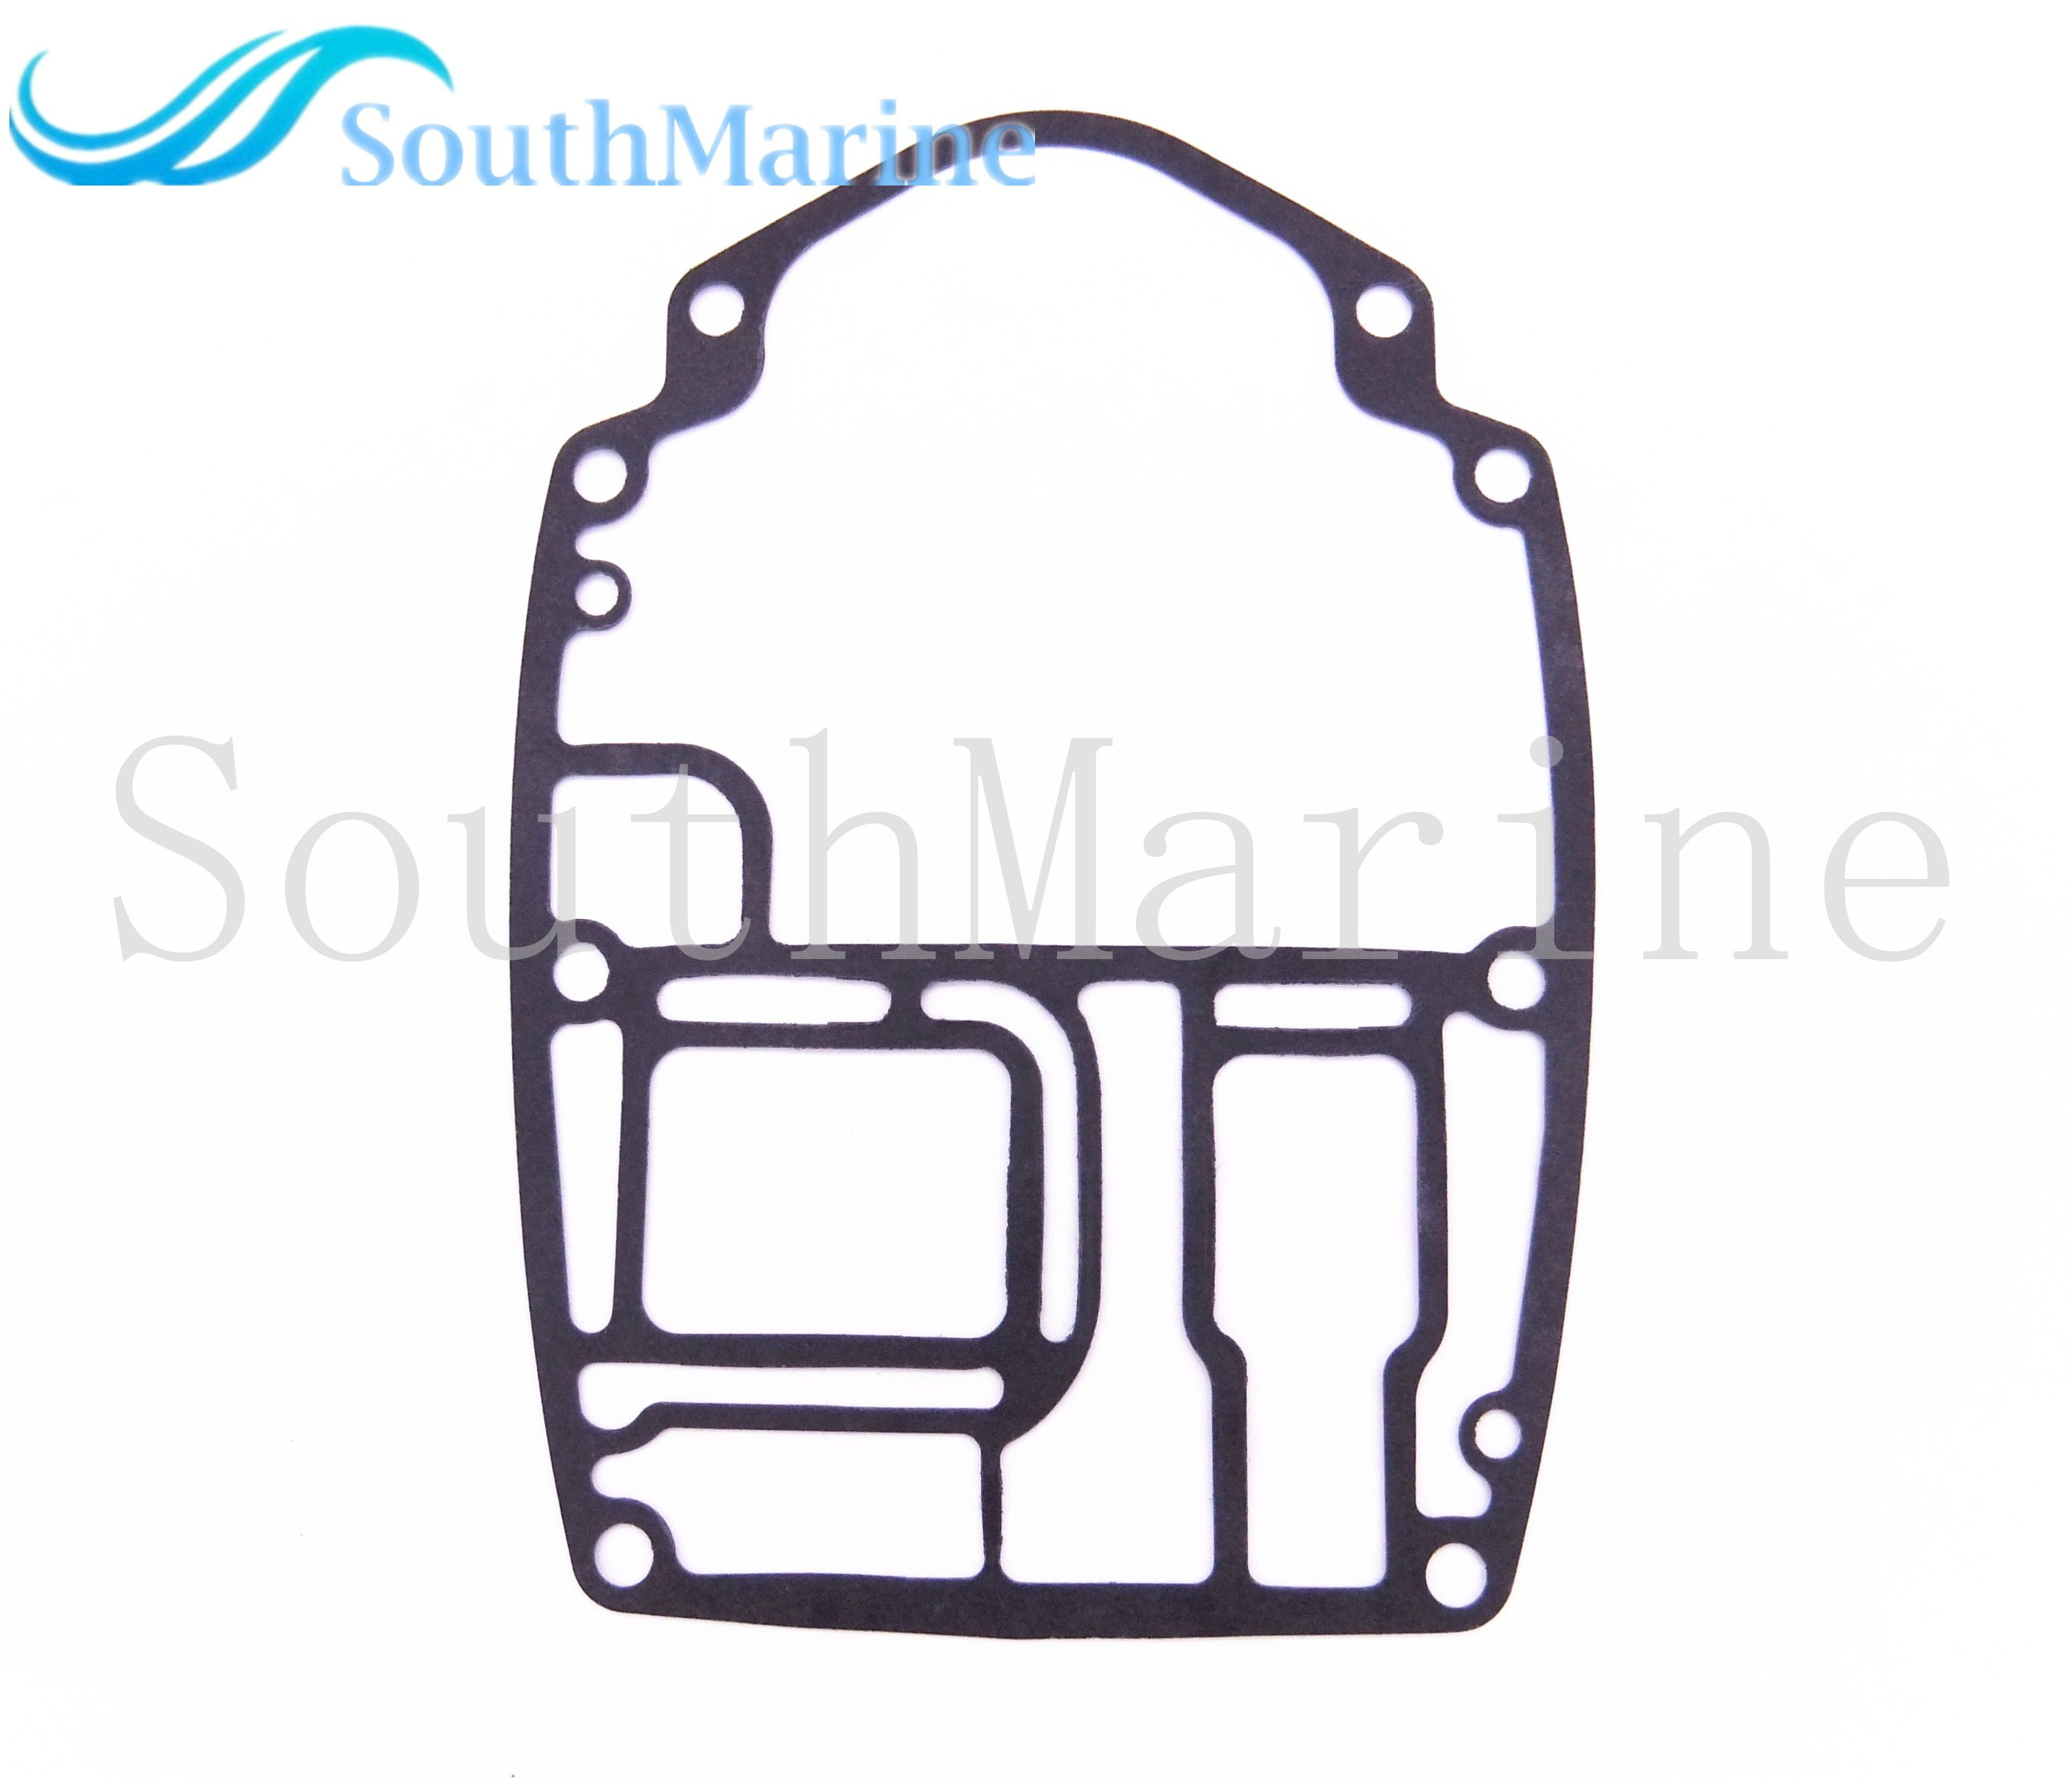 Outboard Engine 66T-45113-A0 Upper Casing Gasket for Yamaha 2-Stroke 40HP 40X E40X Boat Motor Free Shipping